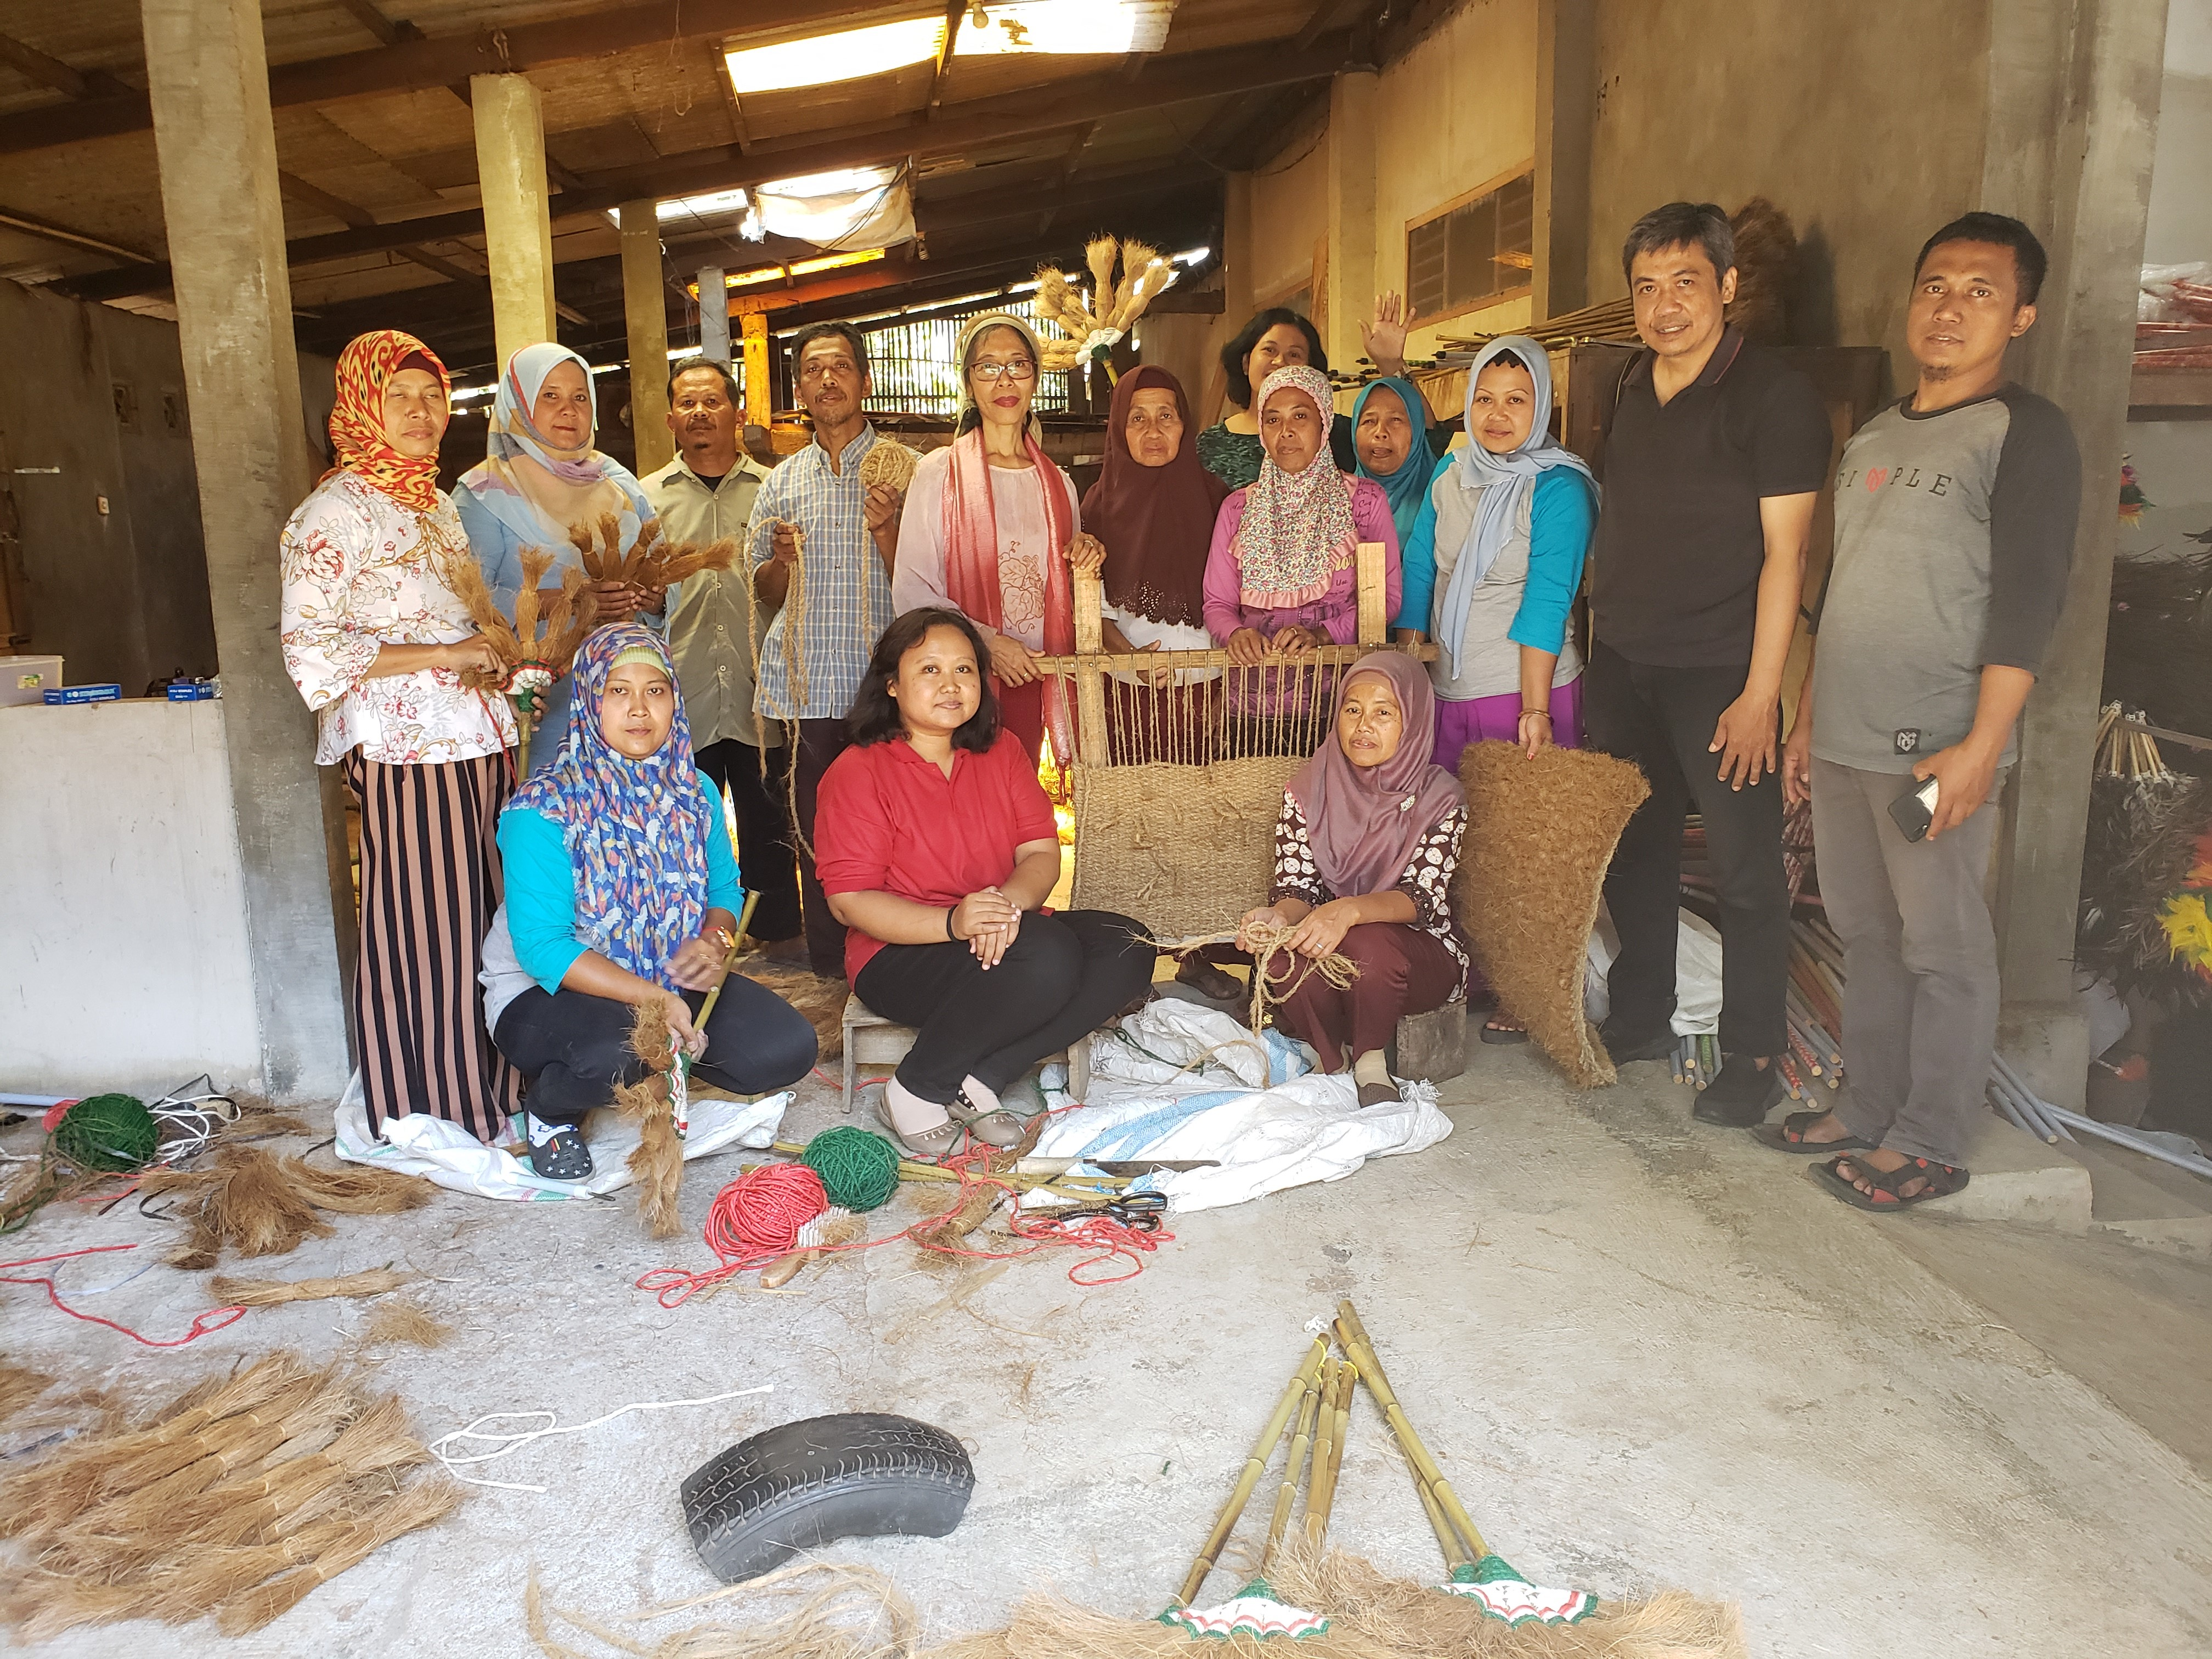 Muslims and Christians worked together at a workshop on making brooms, doormats and ropes from coconut fiber.